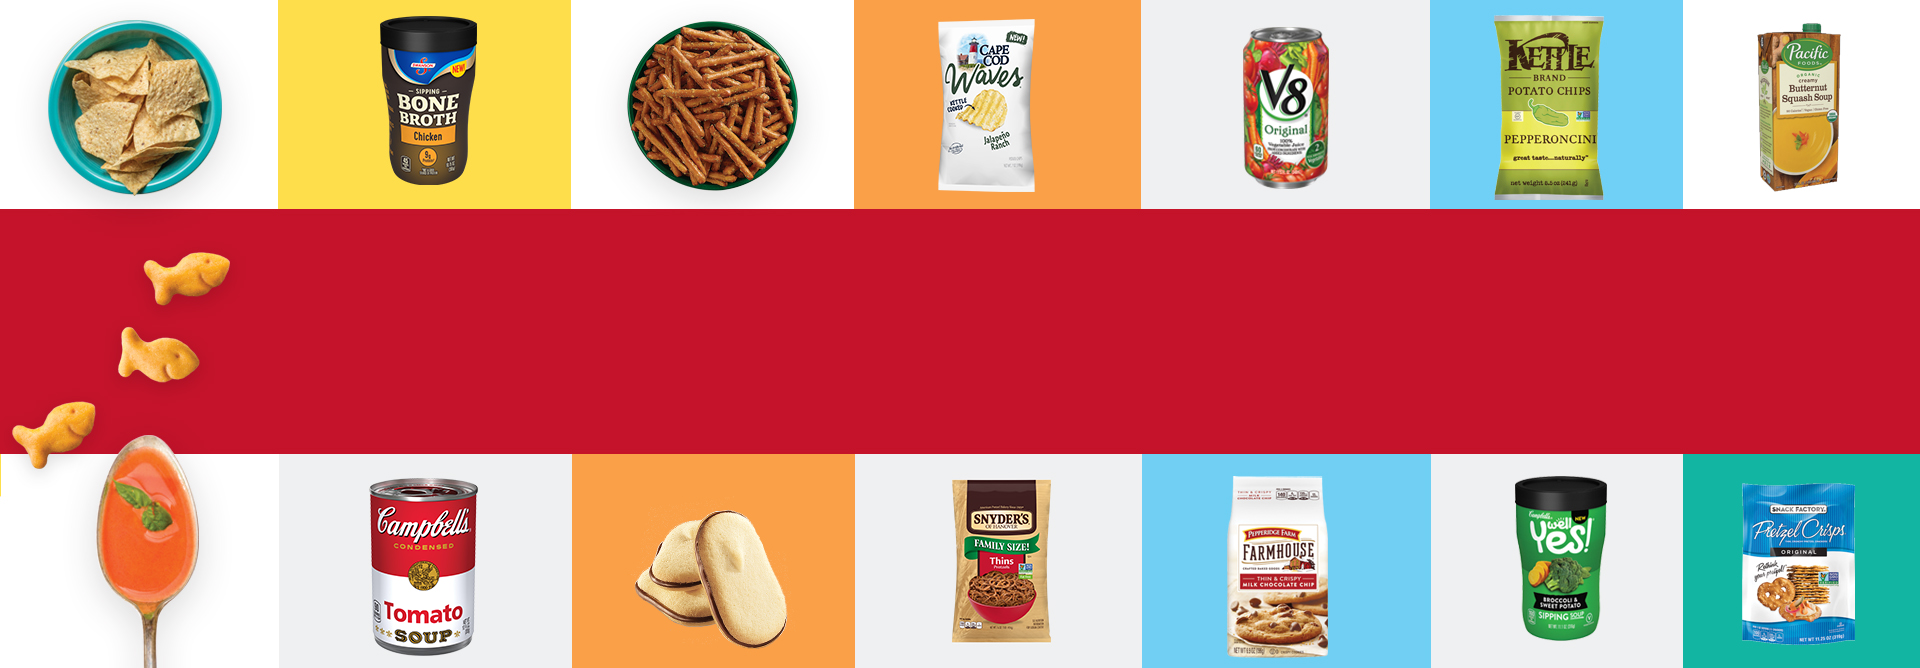 Campbell Soup Company Careers